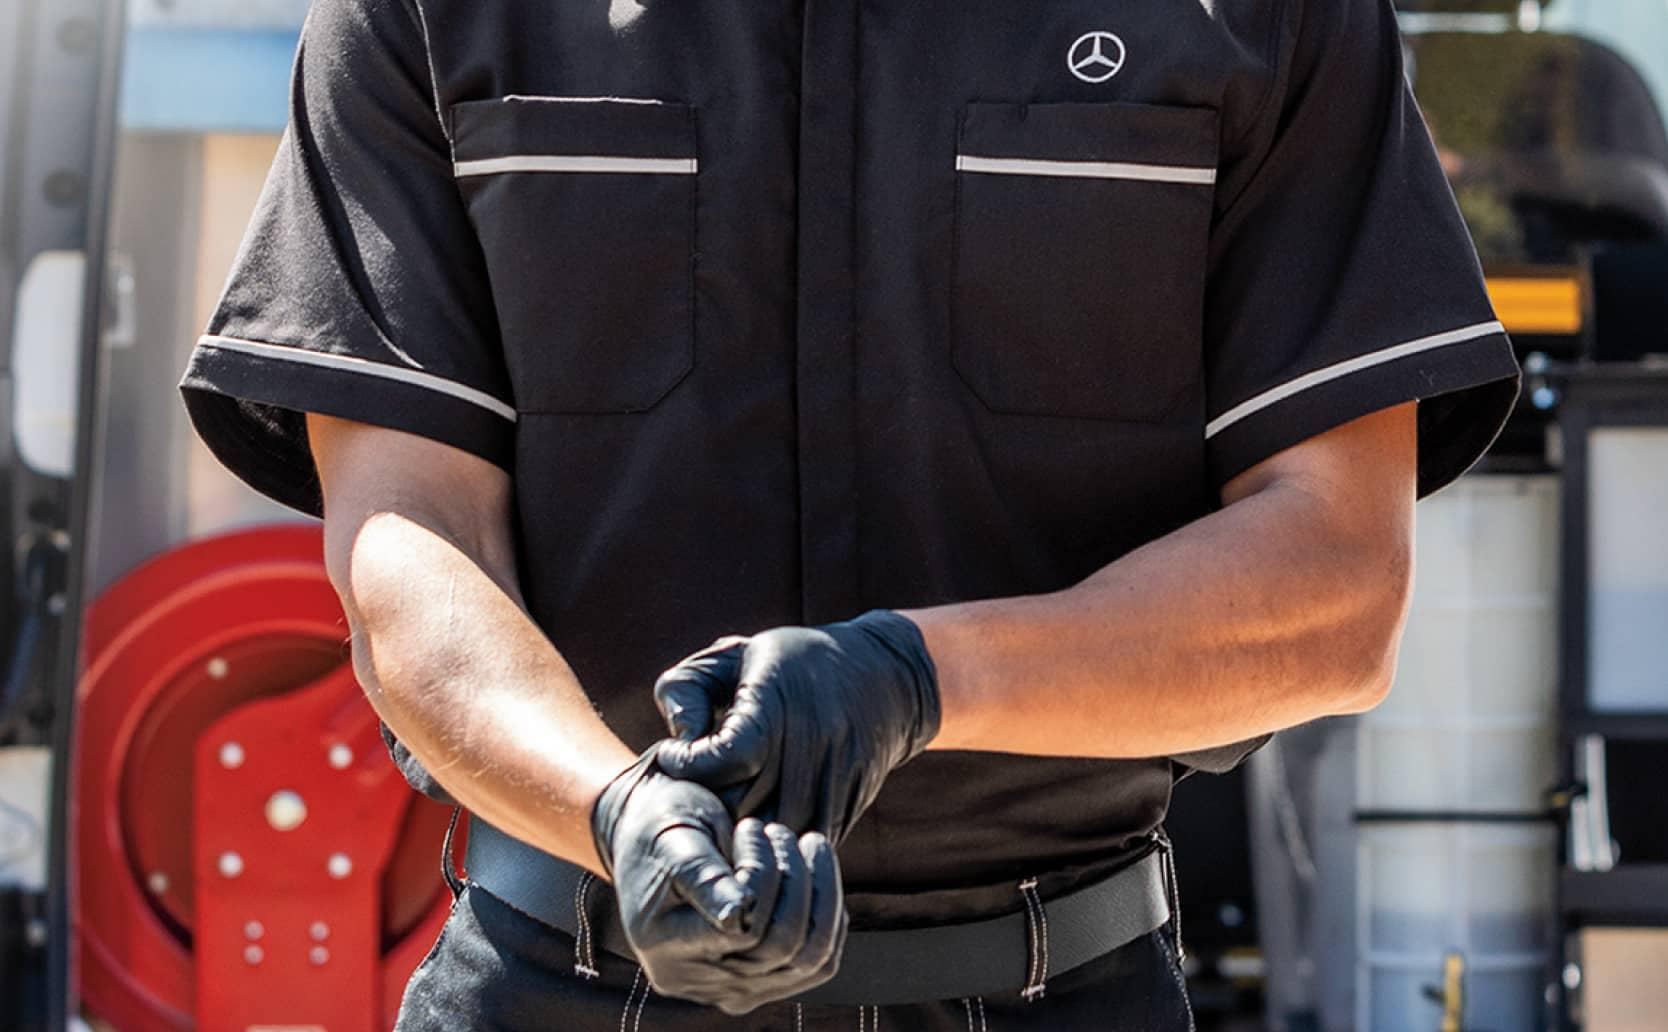 Mercedes-Benz of Foothill Ranch technician